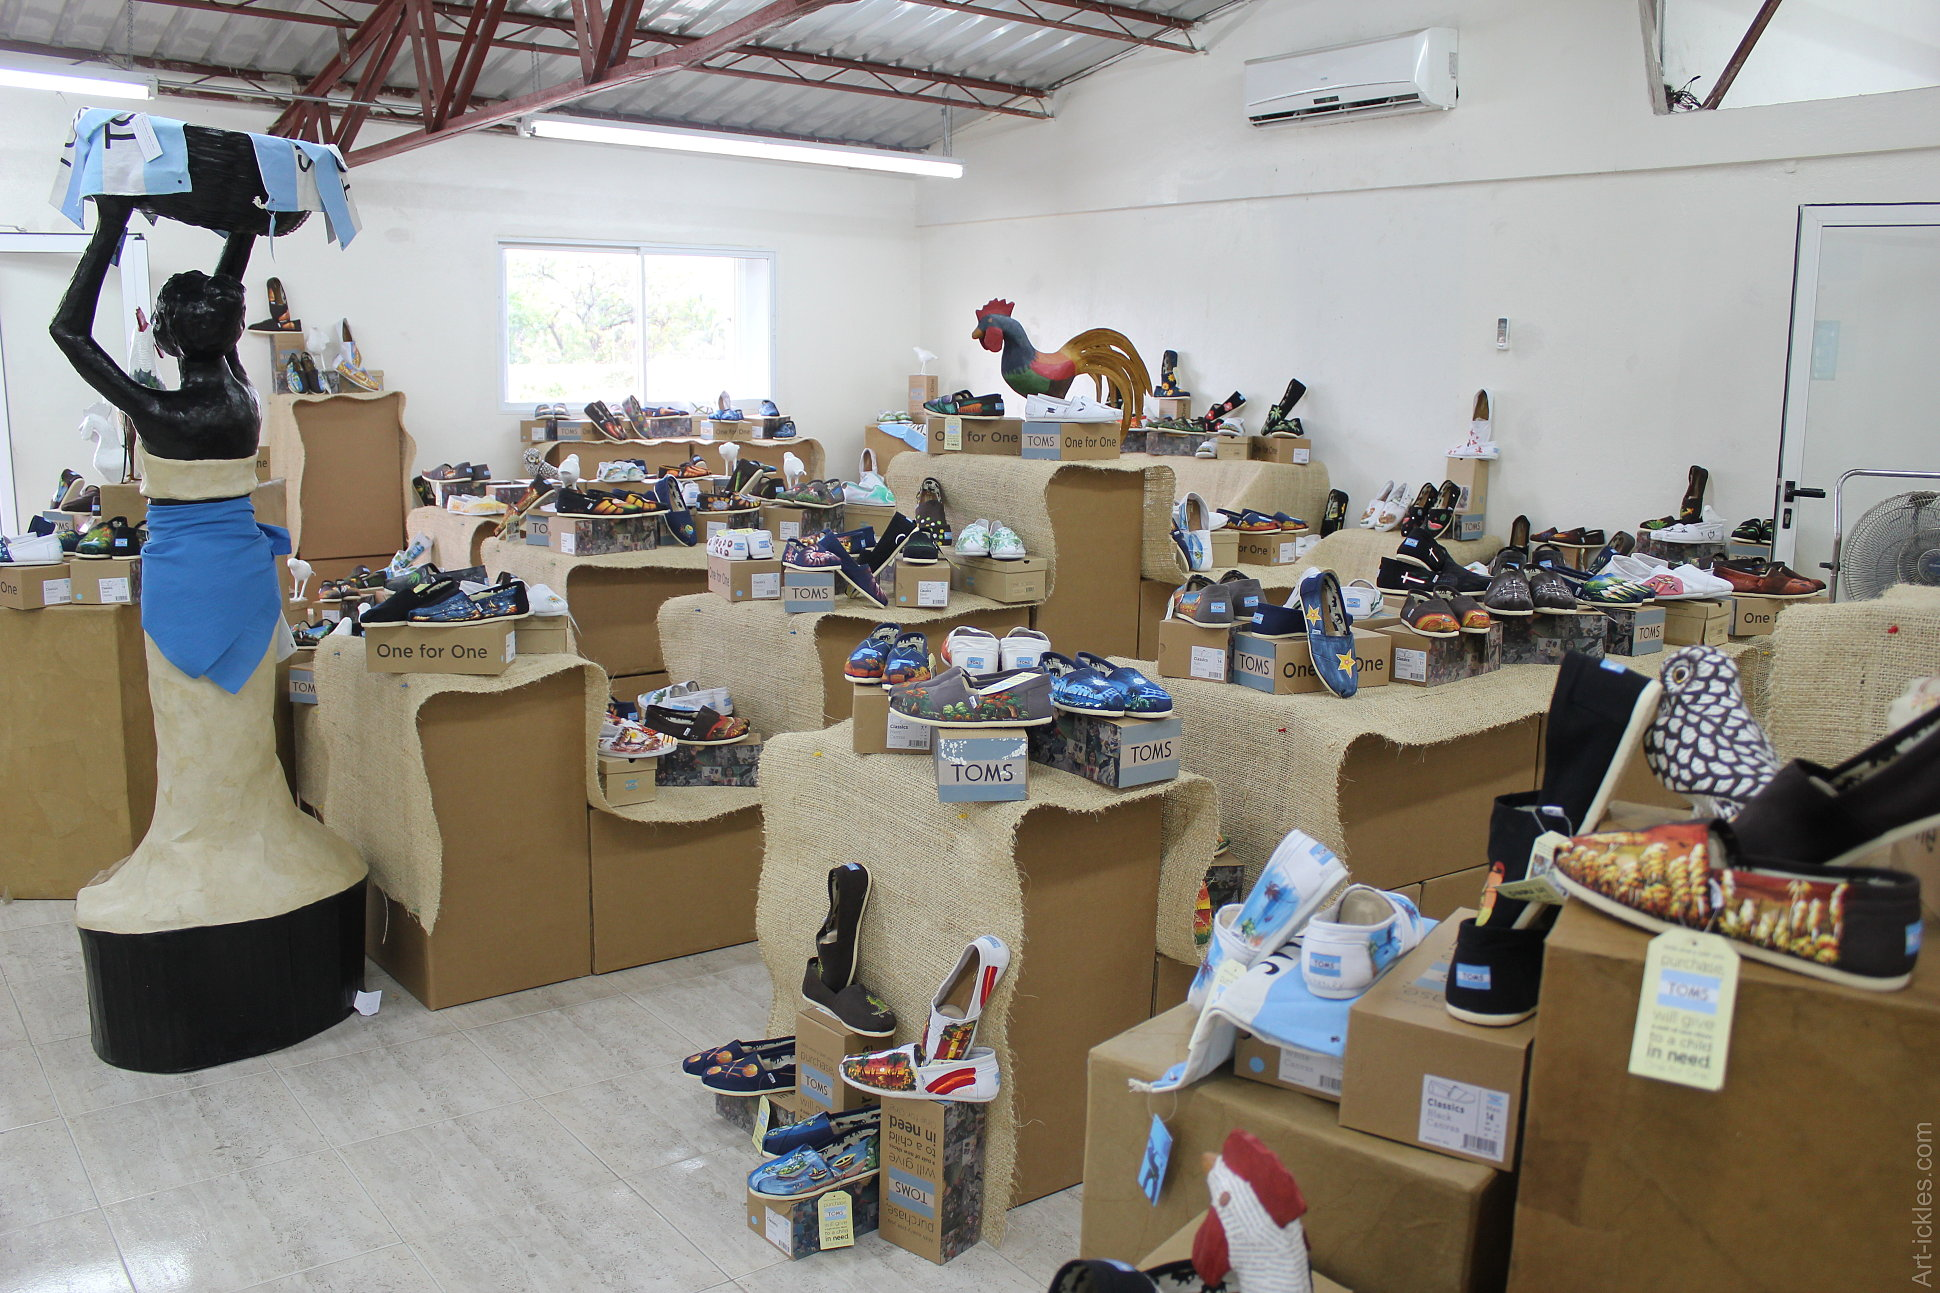 Preparing the TOMS shoes display for their CEO's visit in Haiti. Mixture of paper mache items and painted shoes.